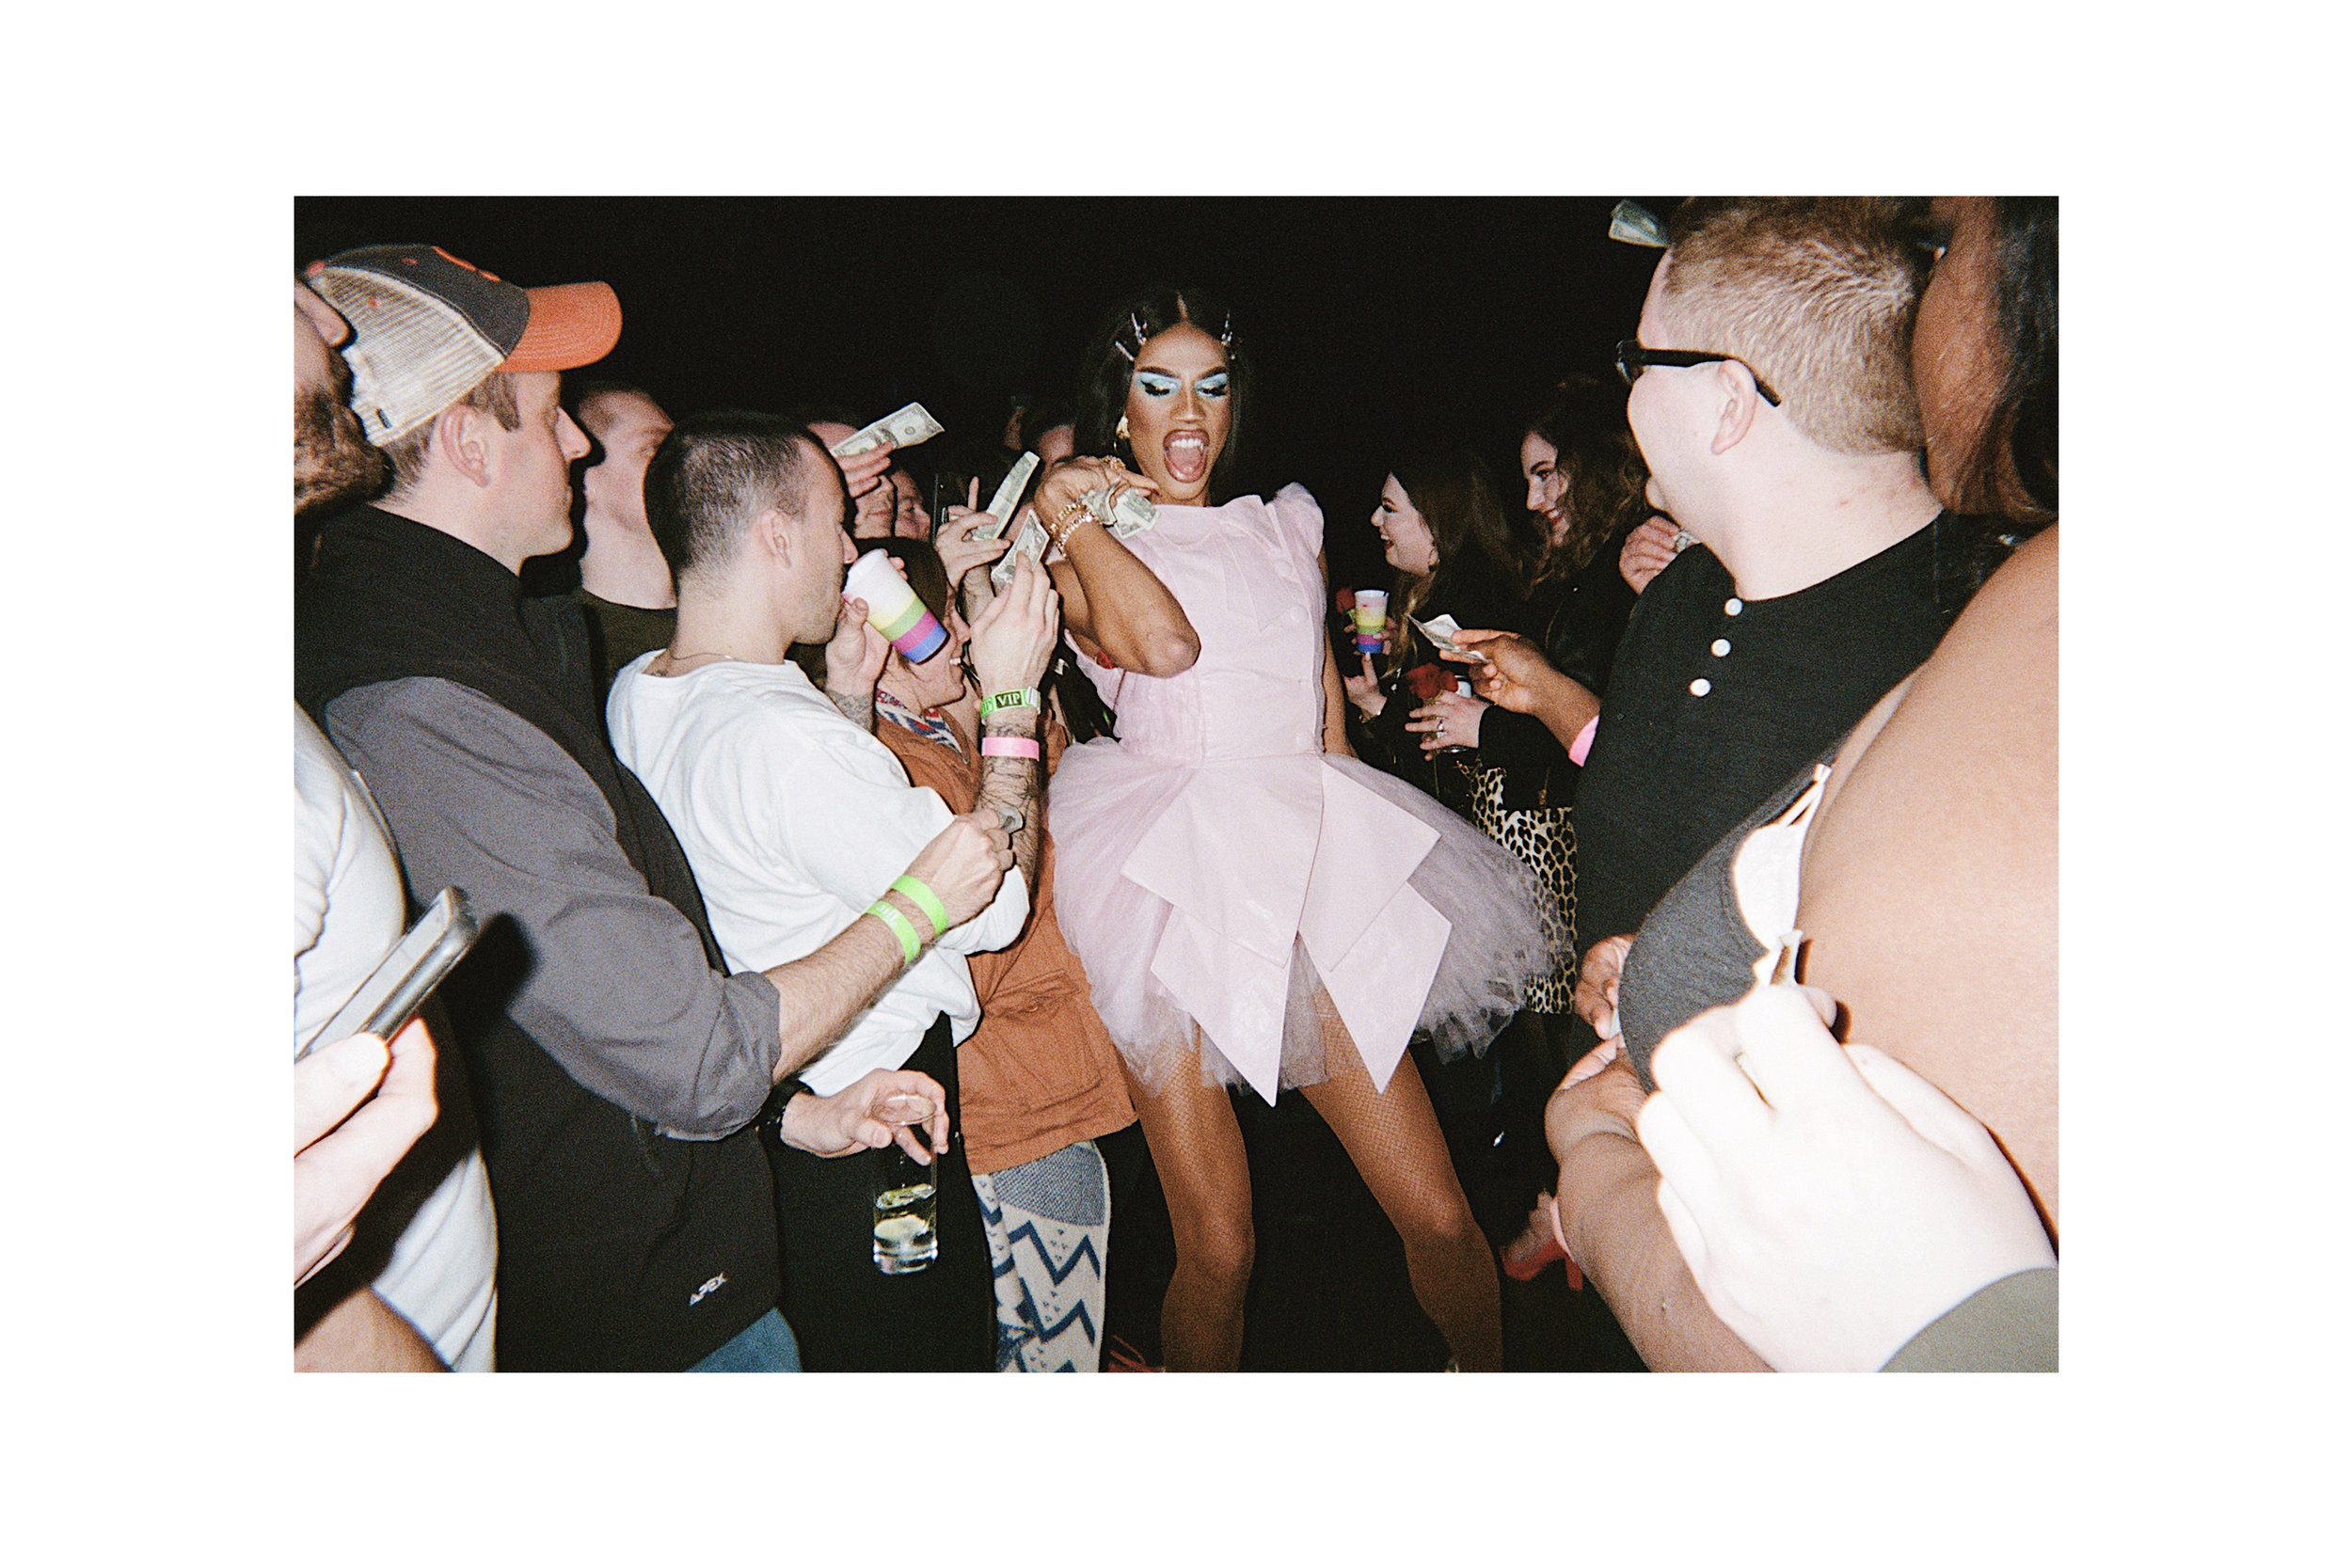 Naomi Smalls at The Saloon in Minneapolis. March, 2019.